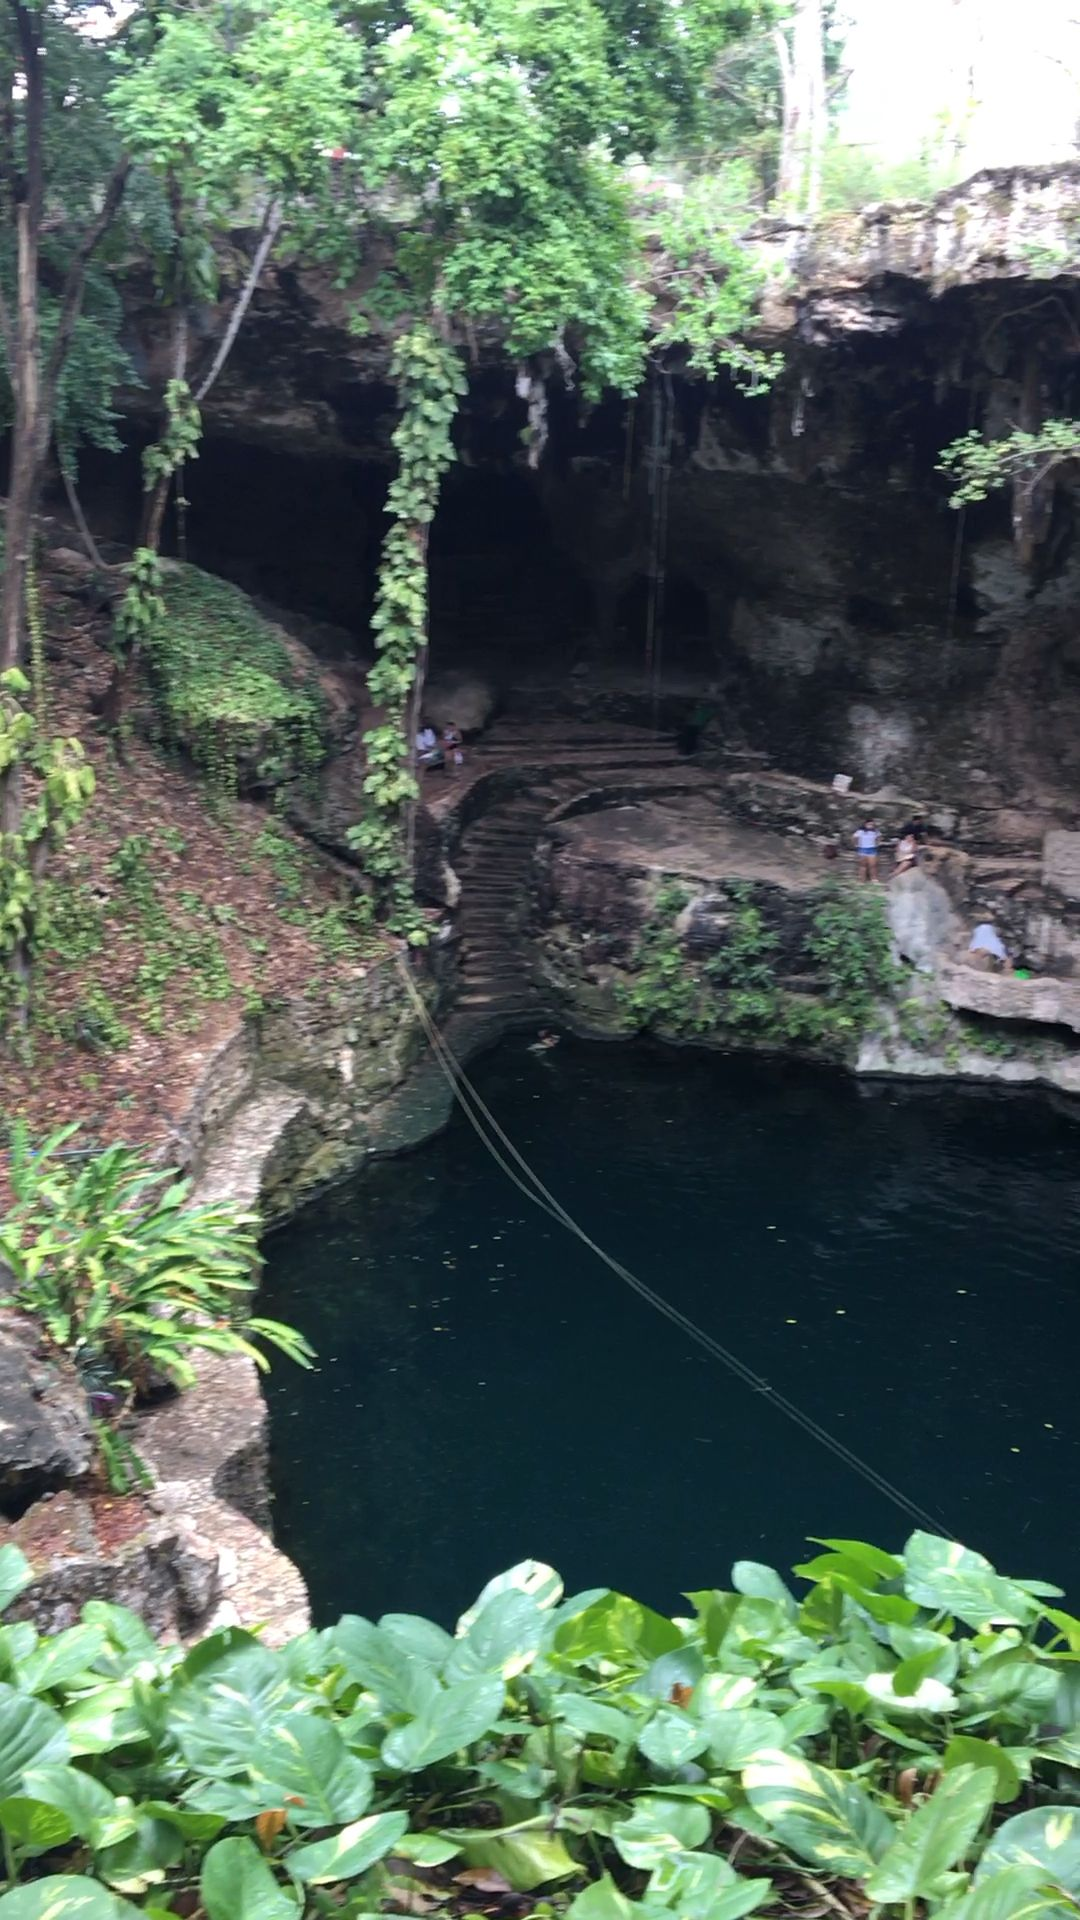 10 Best Cenotes To Visit In Yucatan Peninsula, Mexico